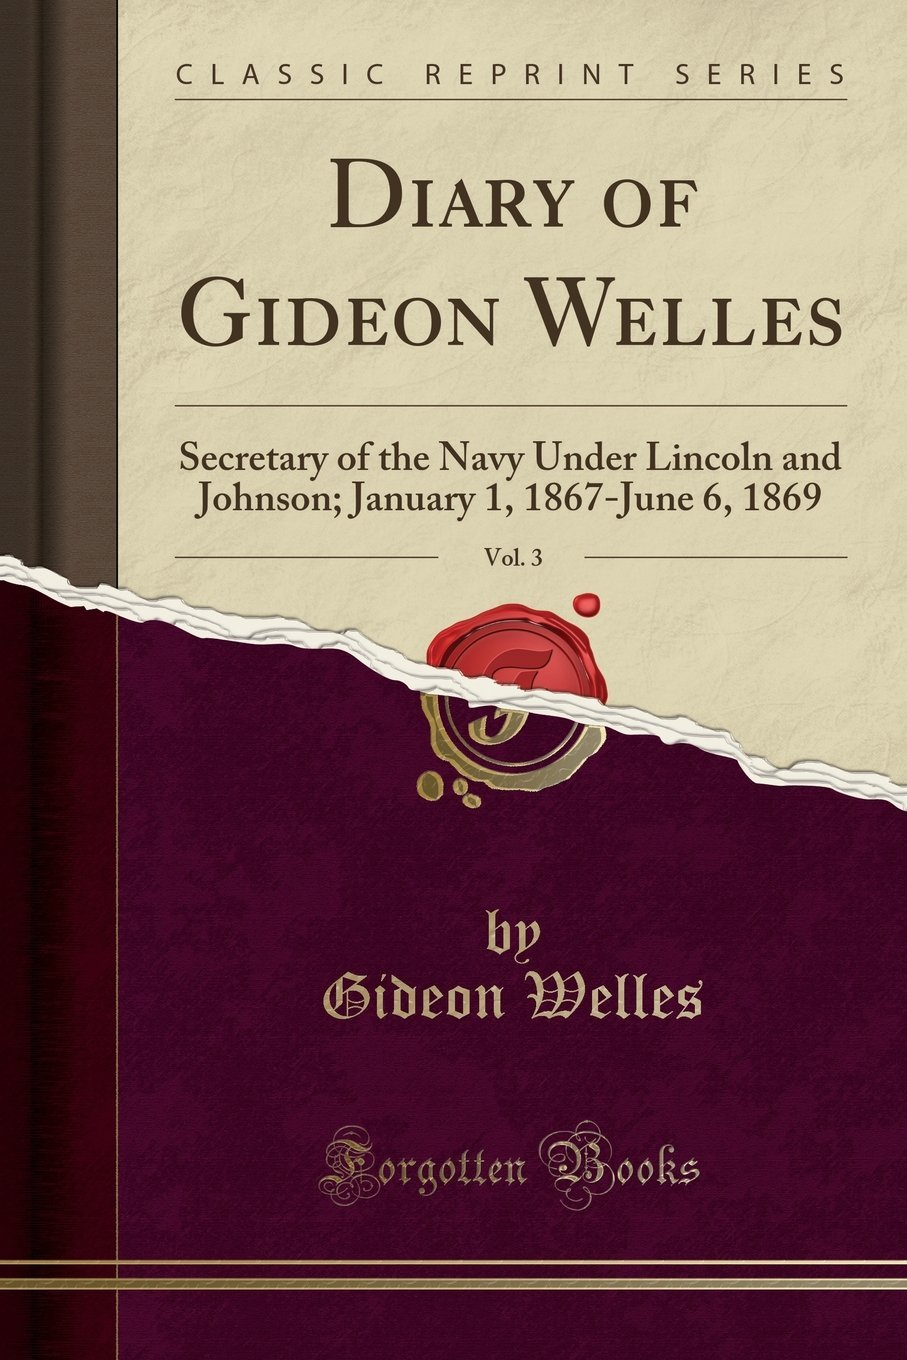 Diary of Gideon Welles, Vol. 3: Secretary of the Navy Under Lincoln and Johnson; January 1, 1867-June 6, 1869 (Classic Reprint) ebook